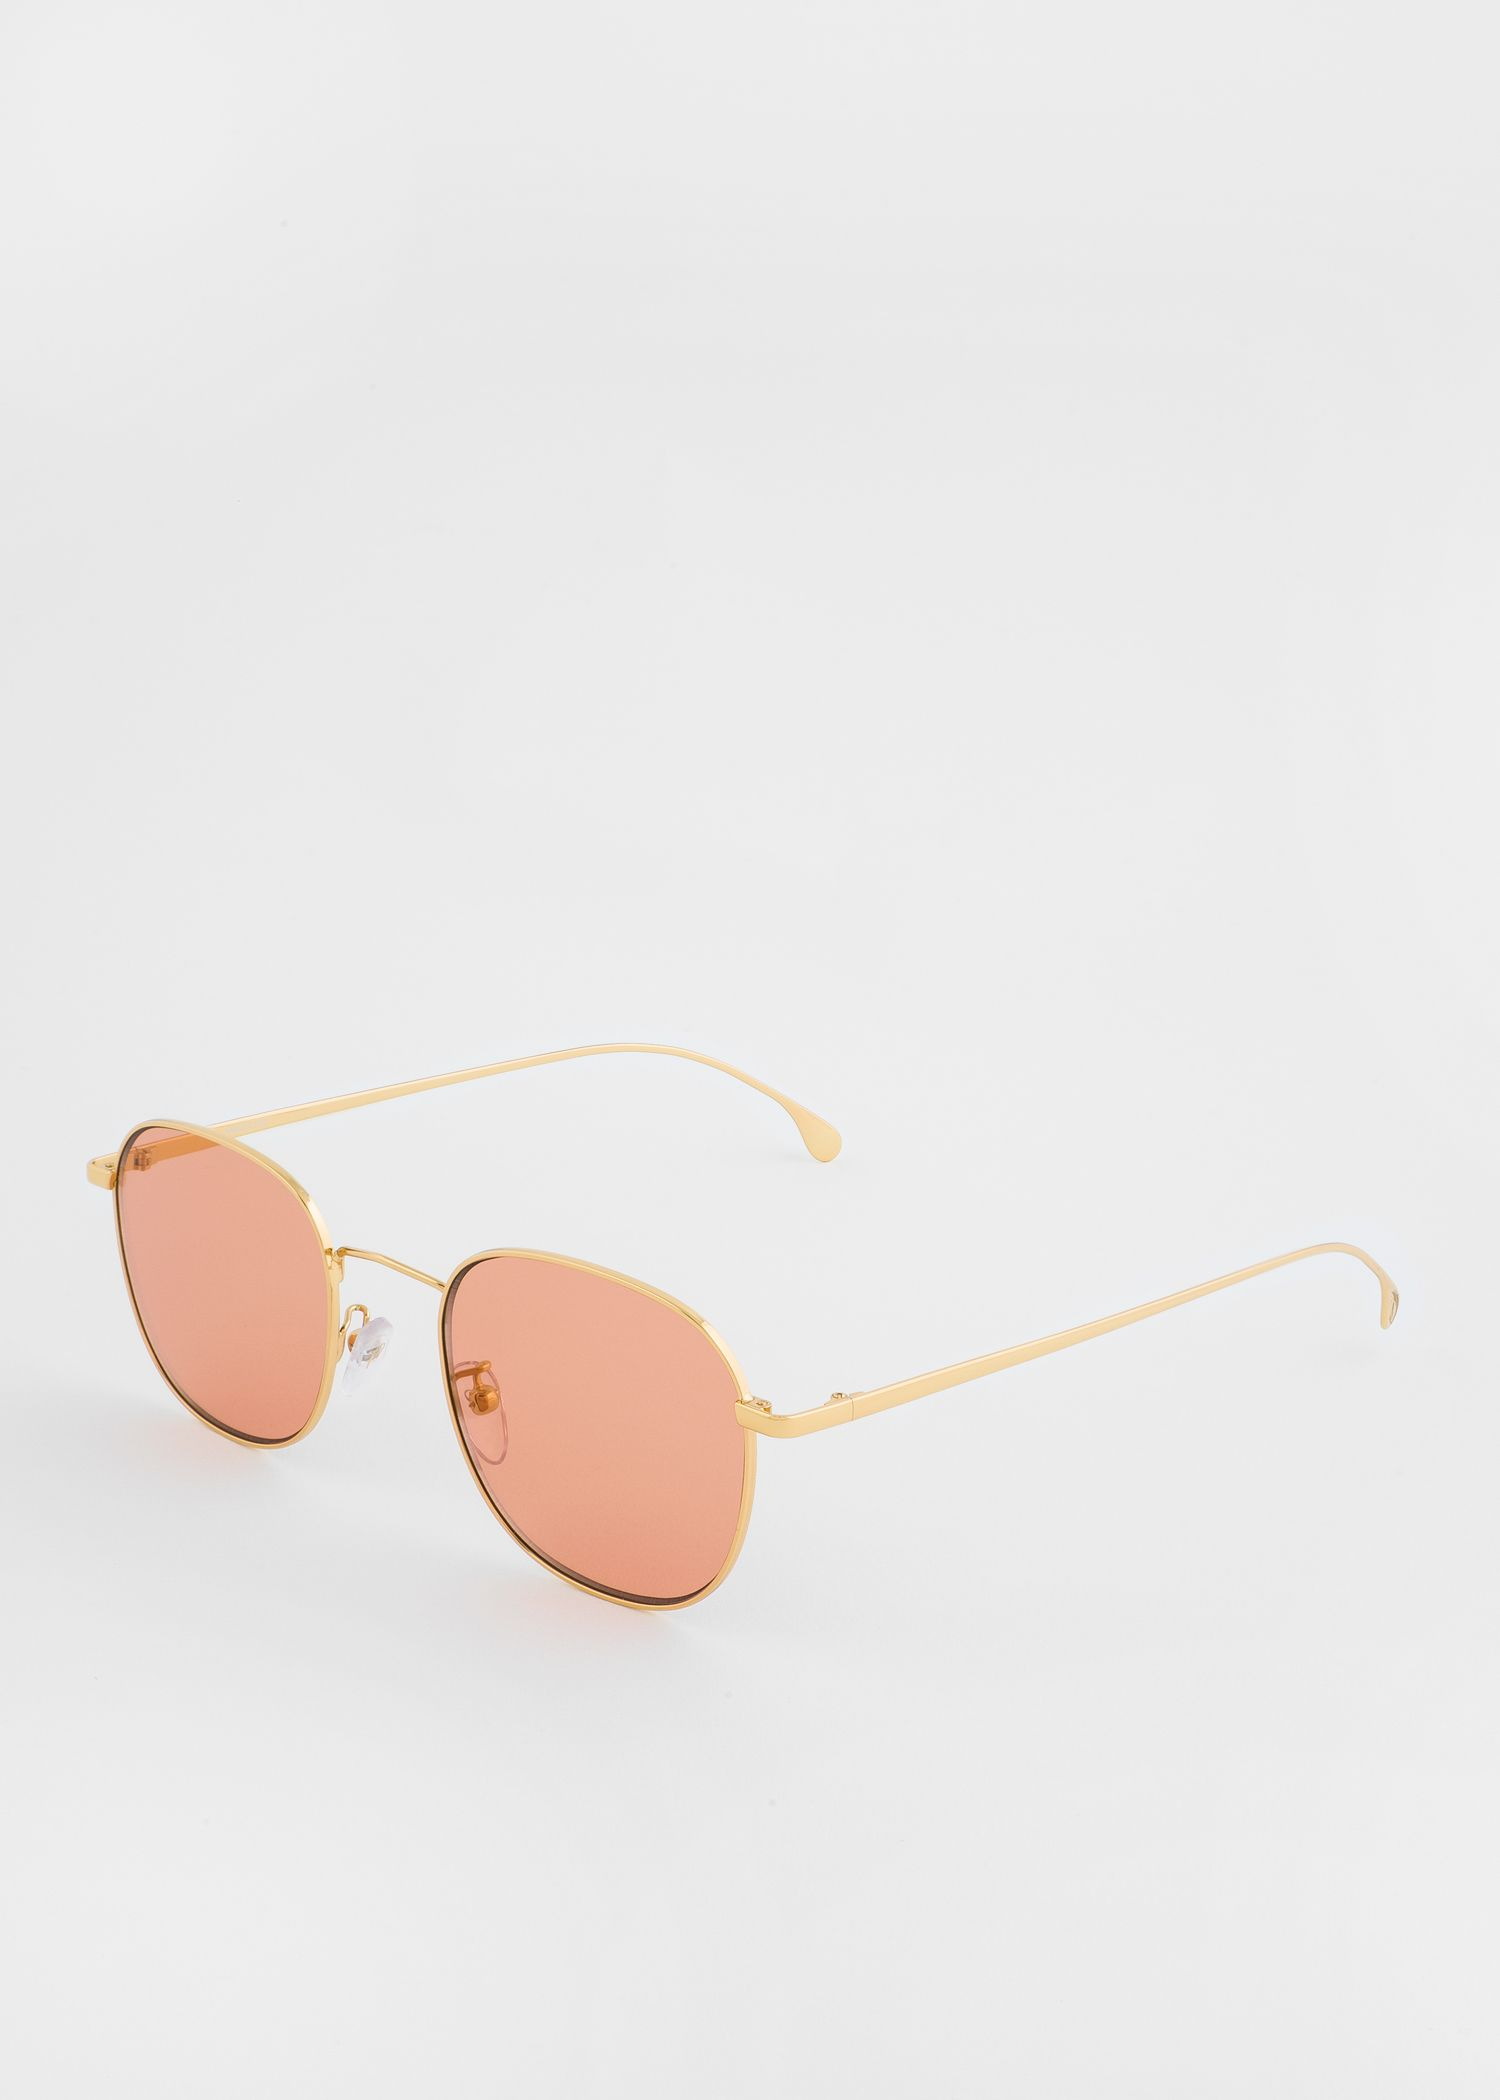 Details about  /Brand New Authentic PAUL SMITH Sunglasses ARNOLD PSSN008V2 Col 01 51mm